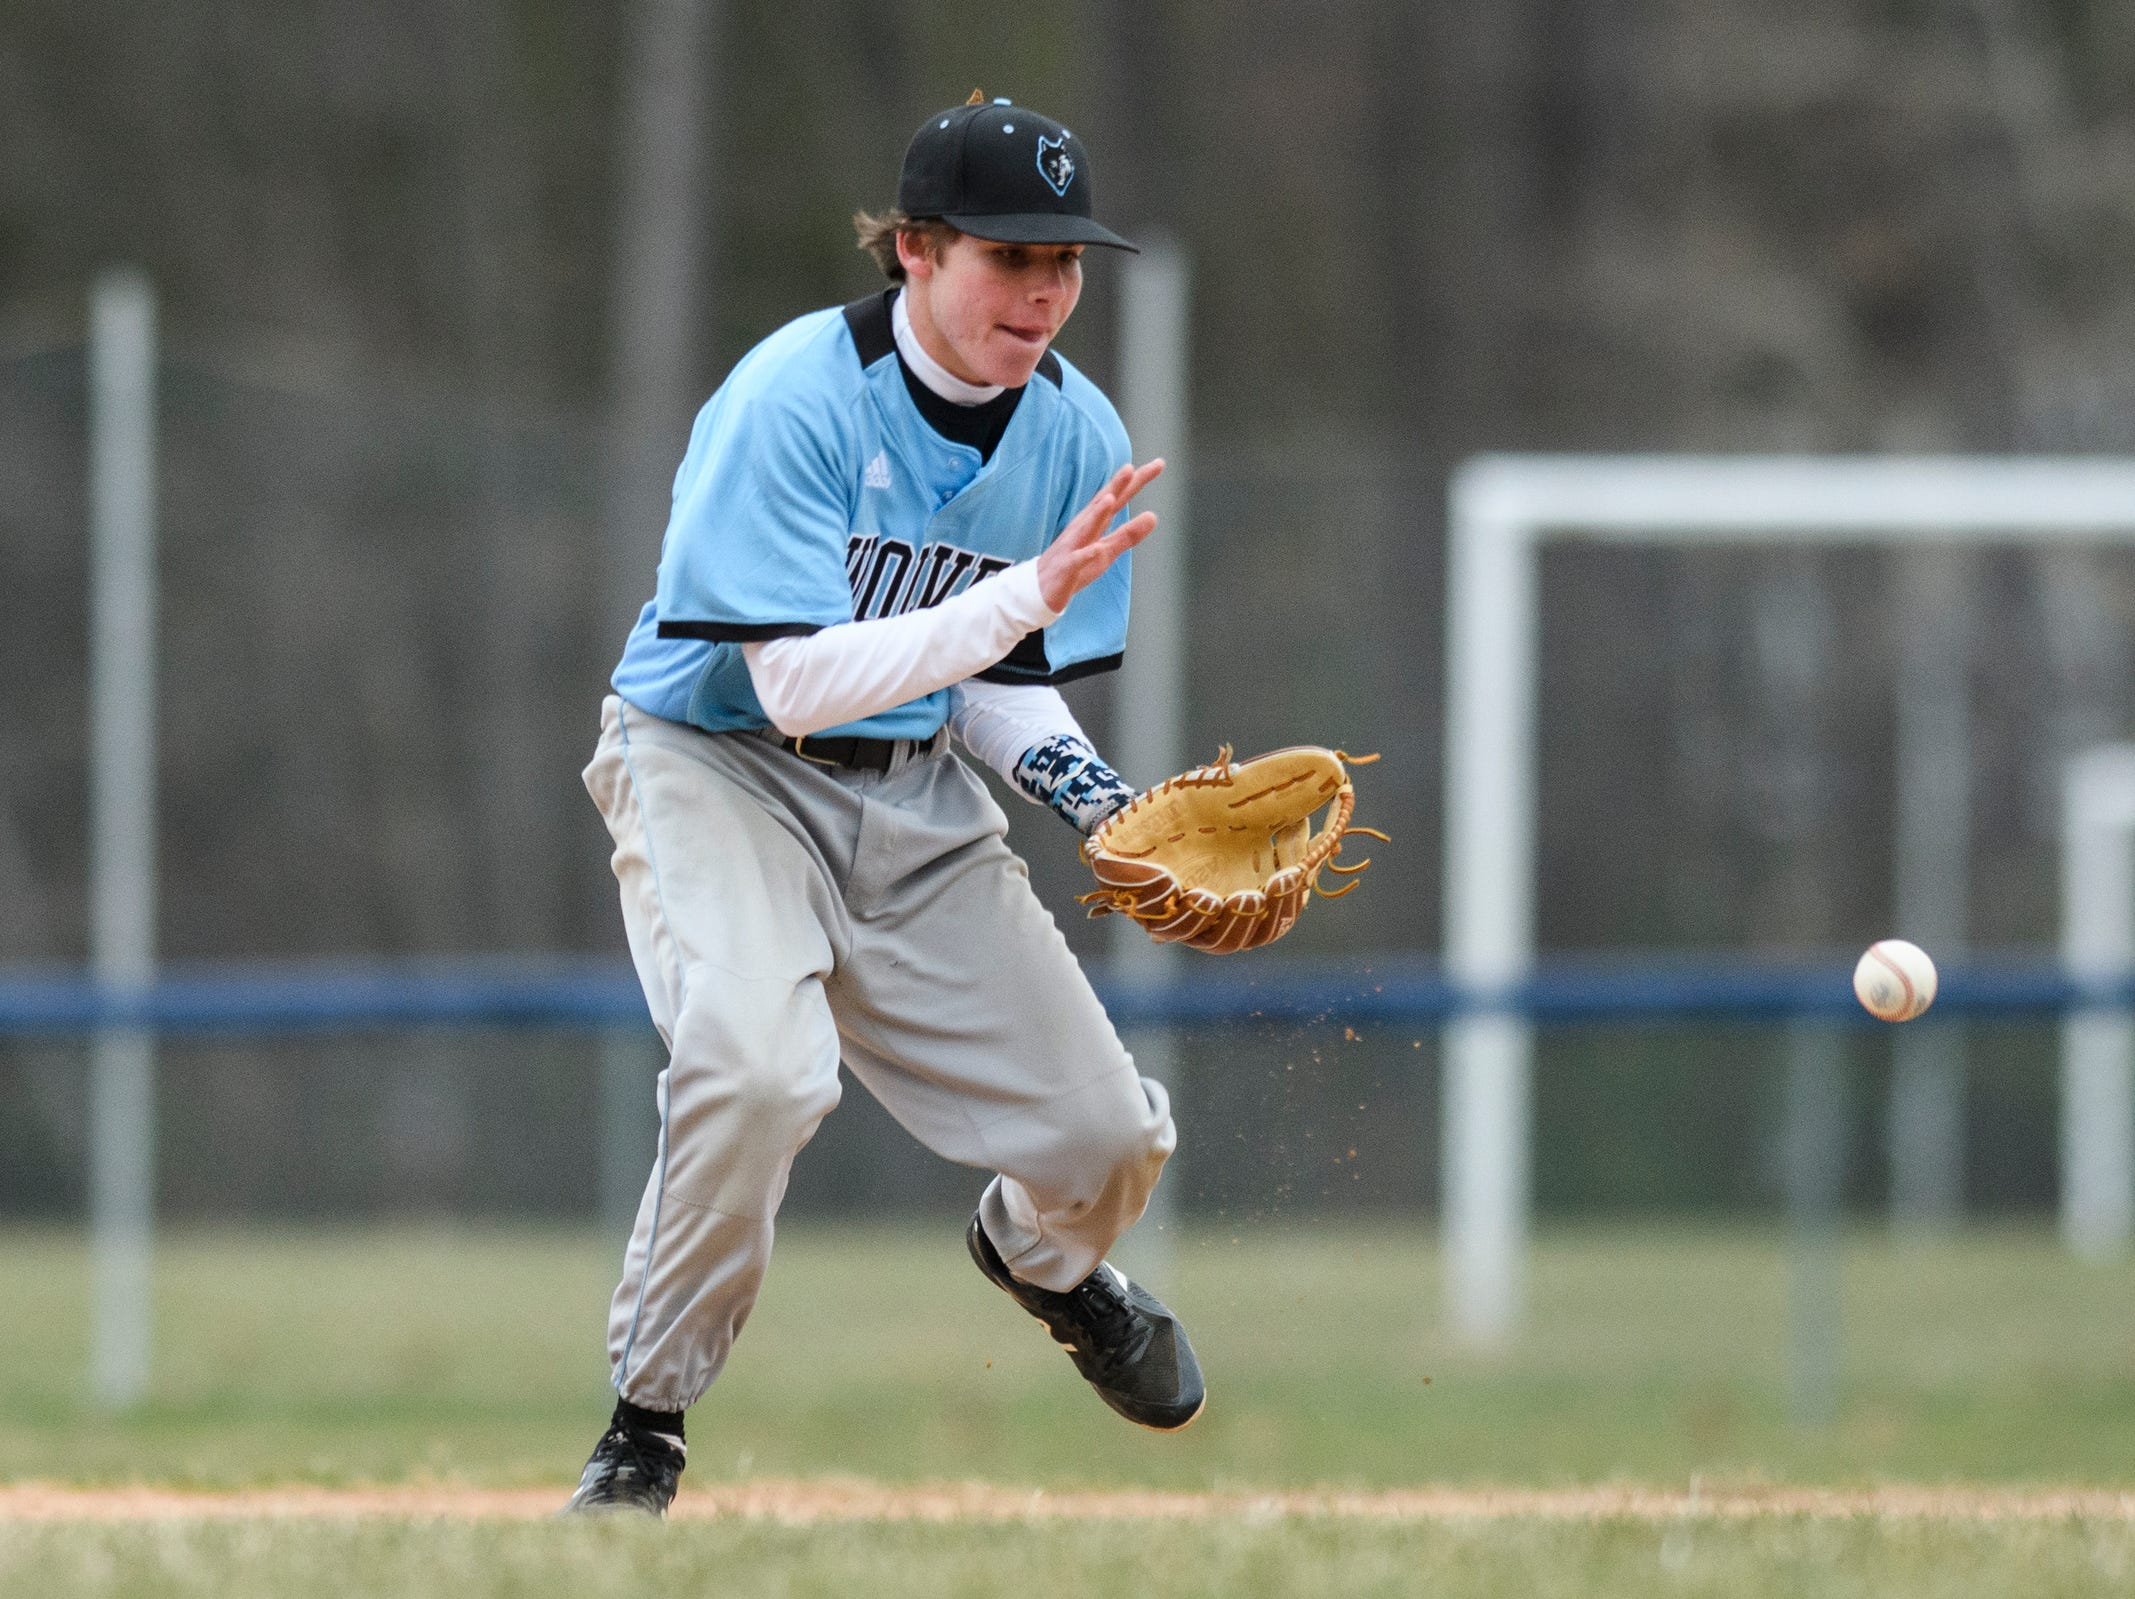 South Burlington second baseman Carson Cherry (7) plays the ball during the boys baseball game between the South Burlington Wolves and the Colchester Lakers at Colchester high school on Thursday afternoon April 18, 2019 in Colchester, Vermont.